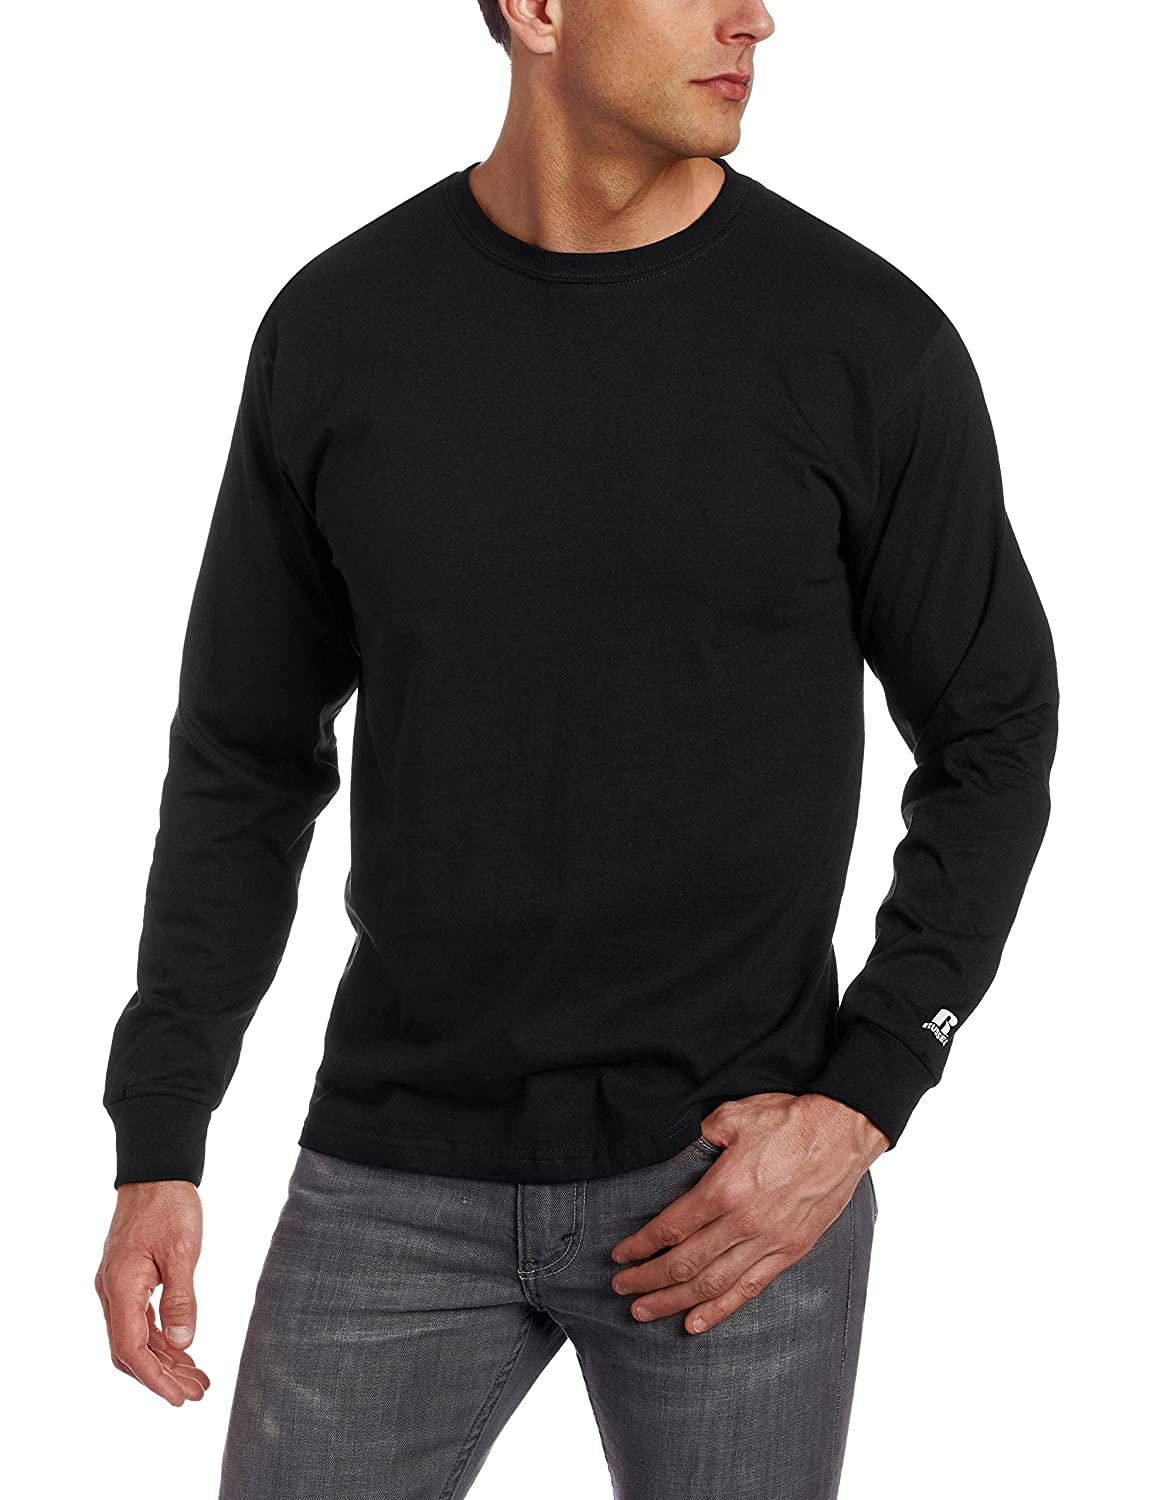 Men'S Athletic Long Sleeve Shirts | Artee Shirt